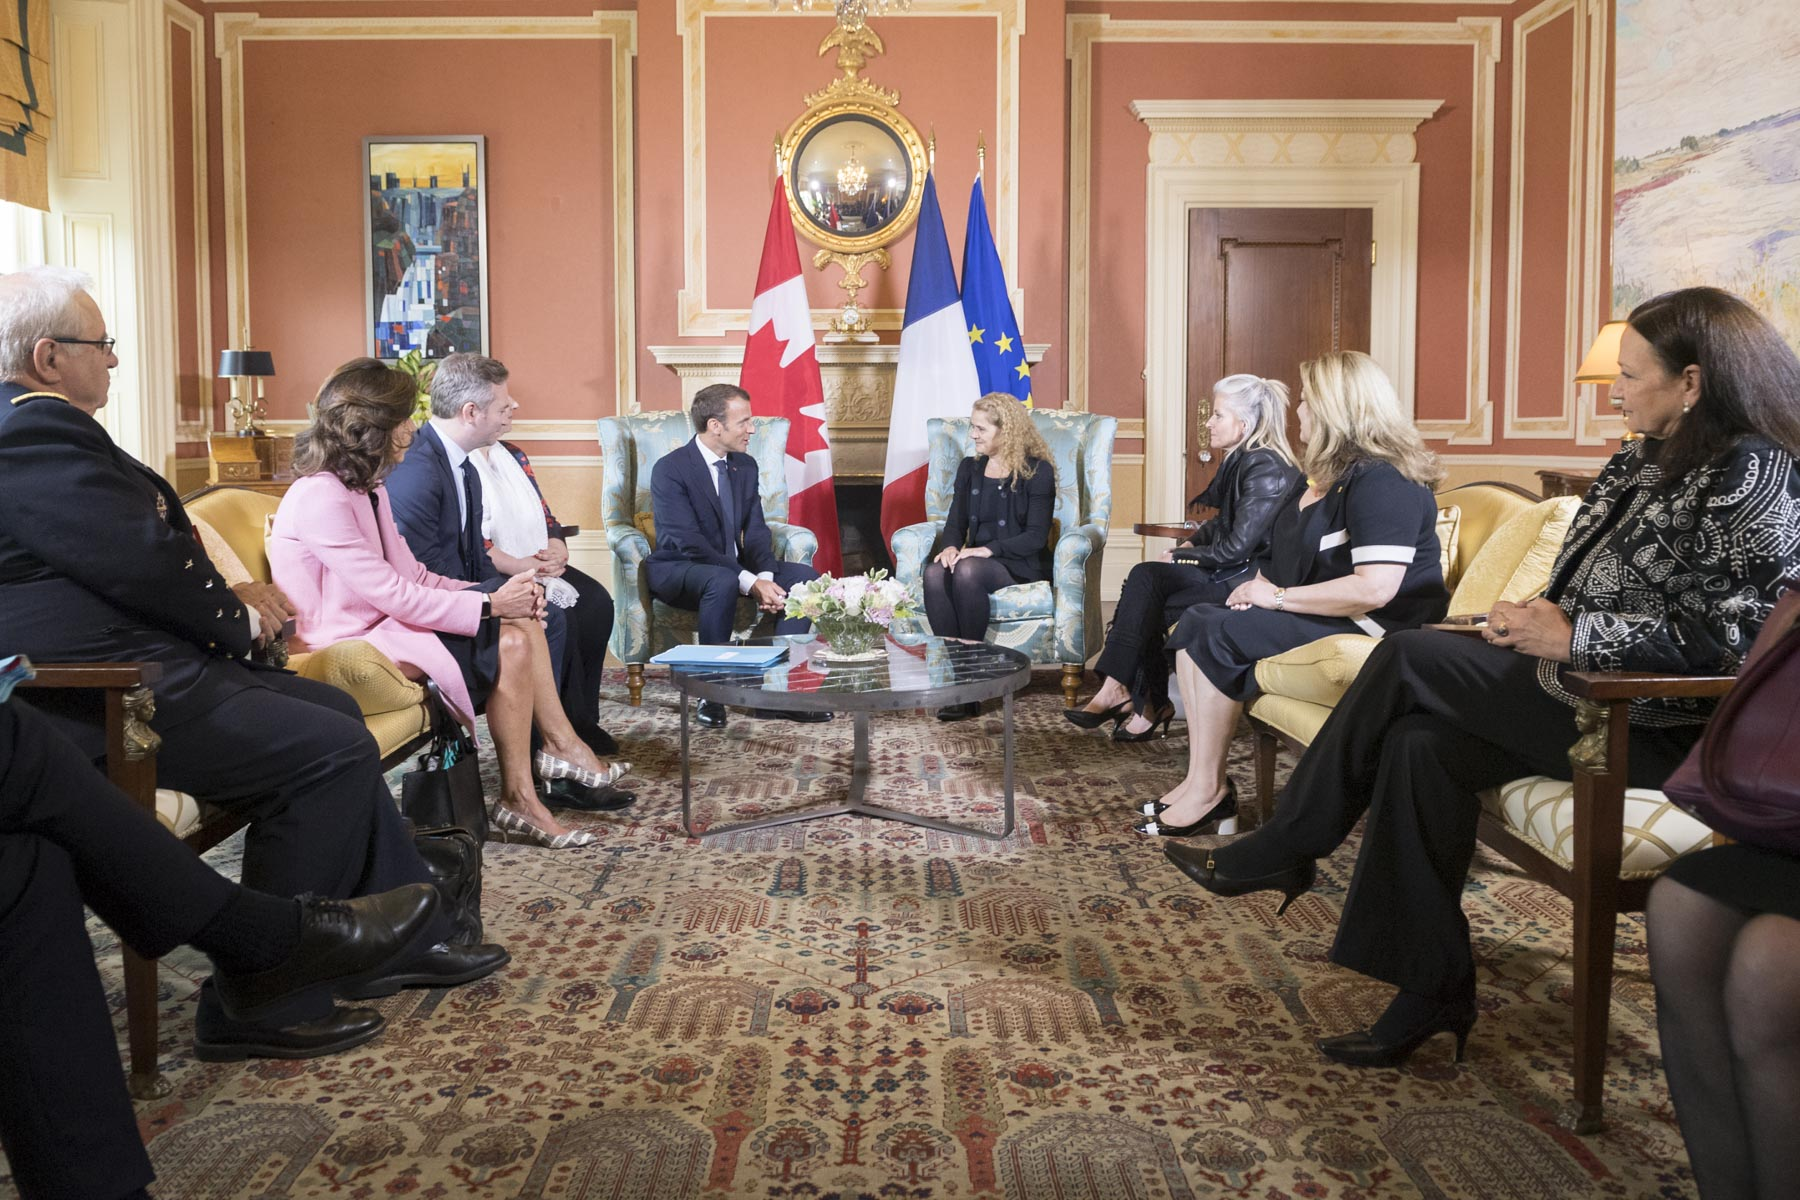 An expanded meeting with Canadian and French delegations immediately followed in the Large Drawing Room of the official residence.